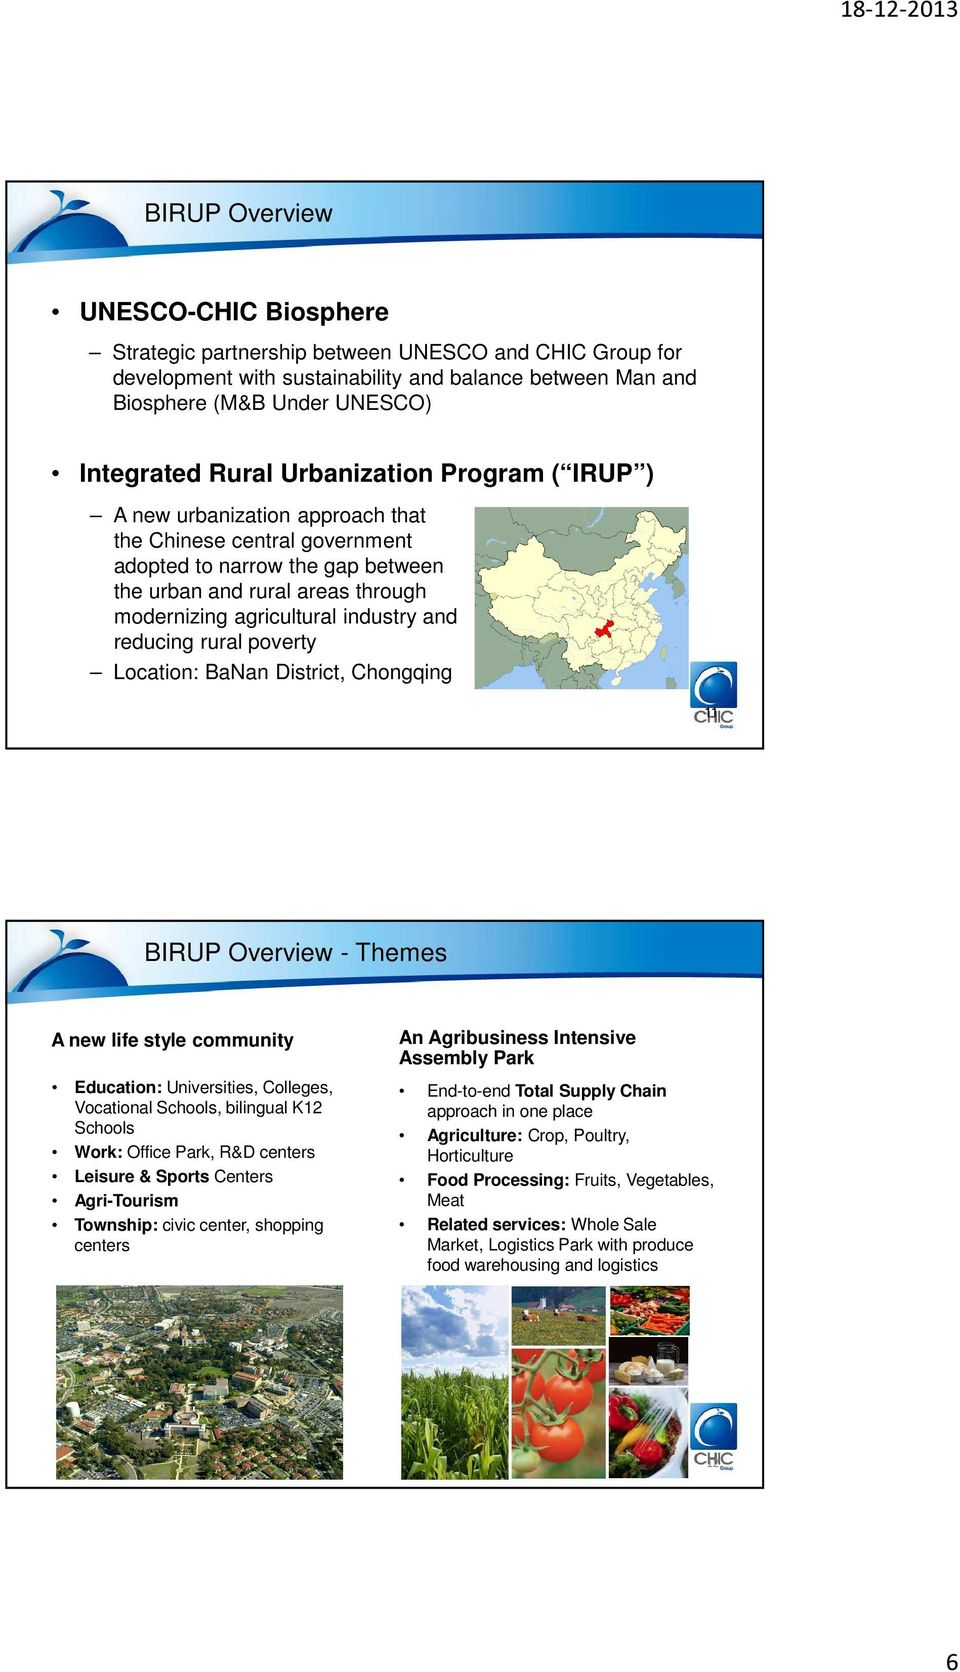 reducing rural poverty Location: BaNan District, Chongqing 11 BIRUP Overview - Themes A new life style community Education: Universities, Colleges, Vocational Schools, bilingual K12 Schools Work: